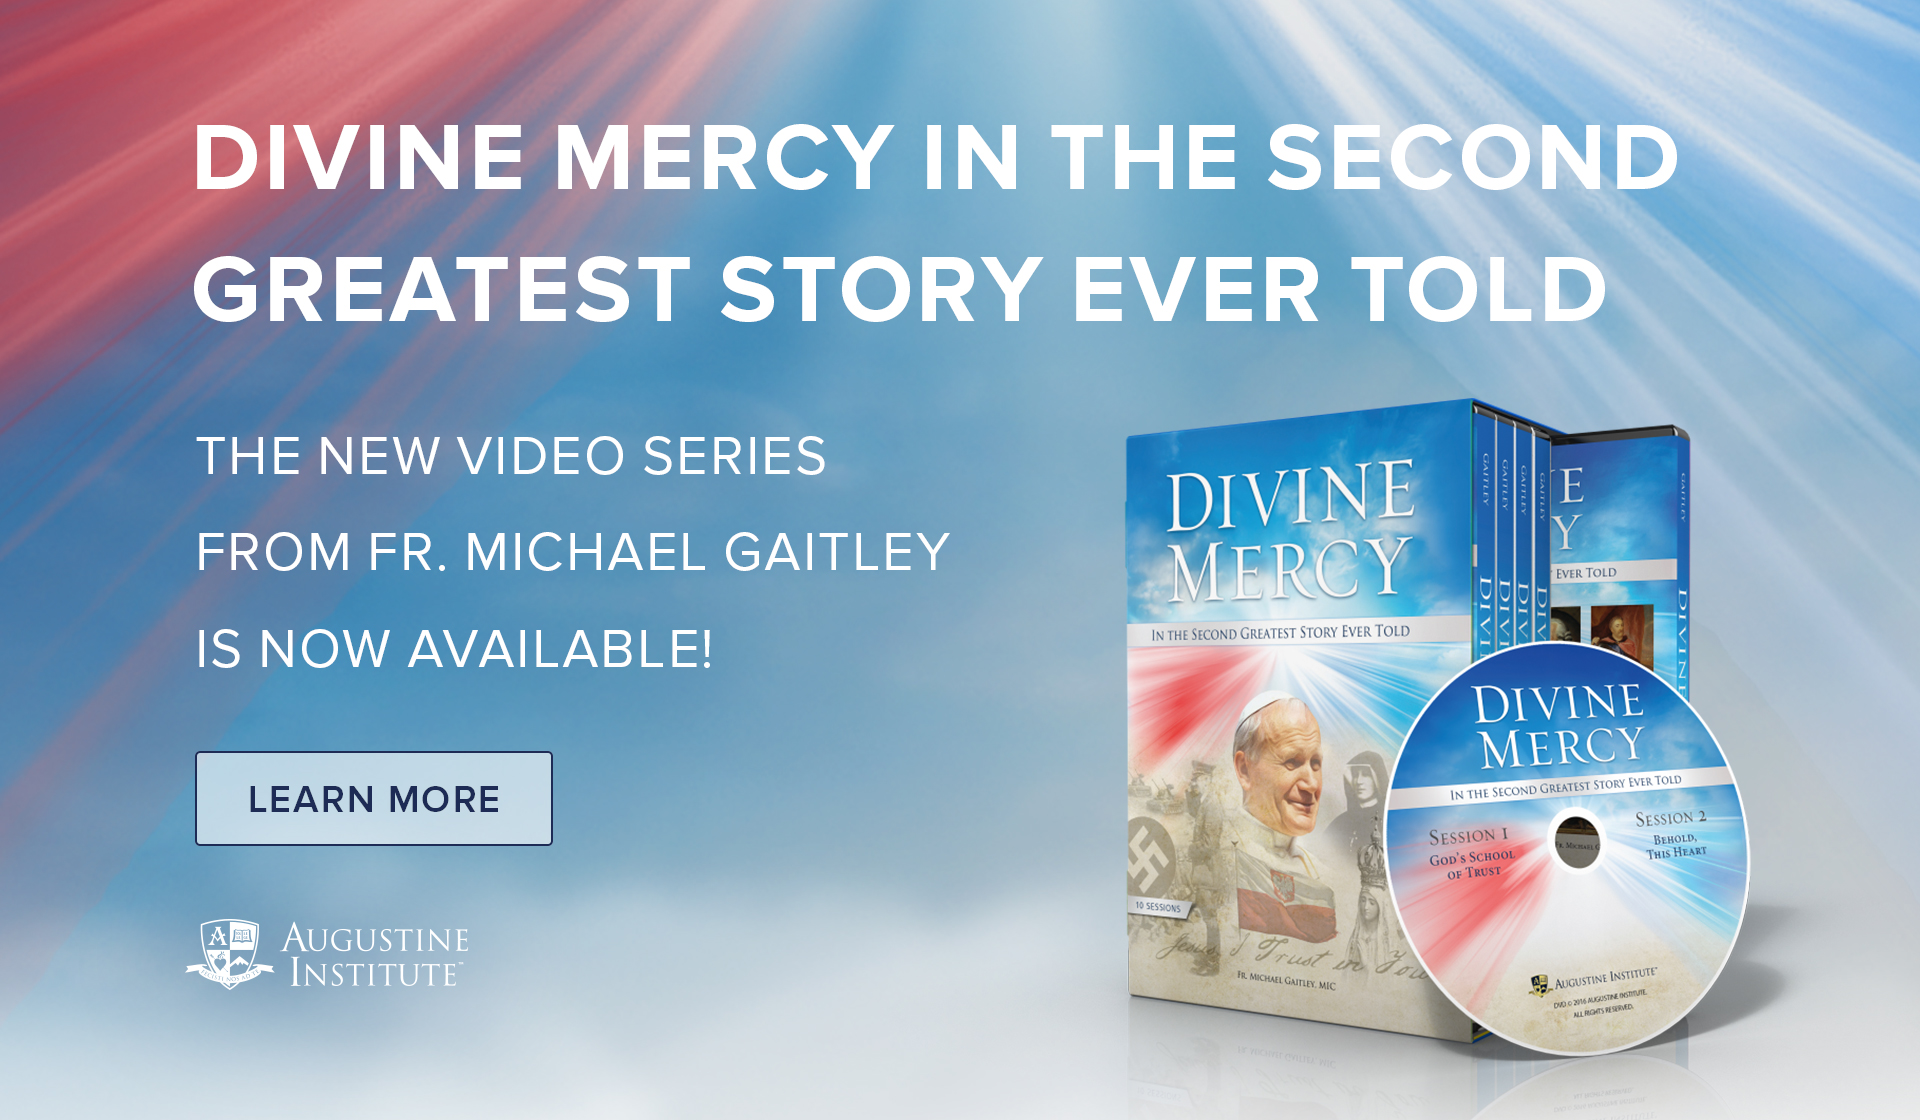 Divine Mercy Launch